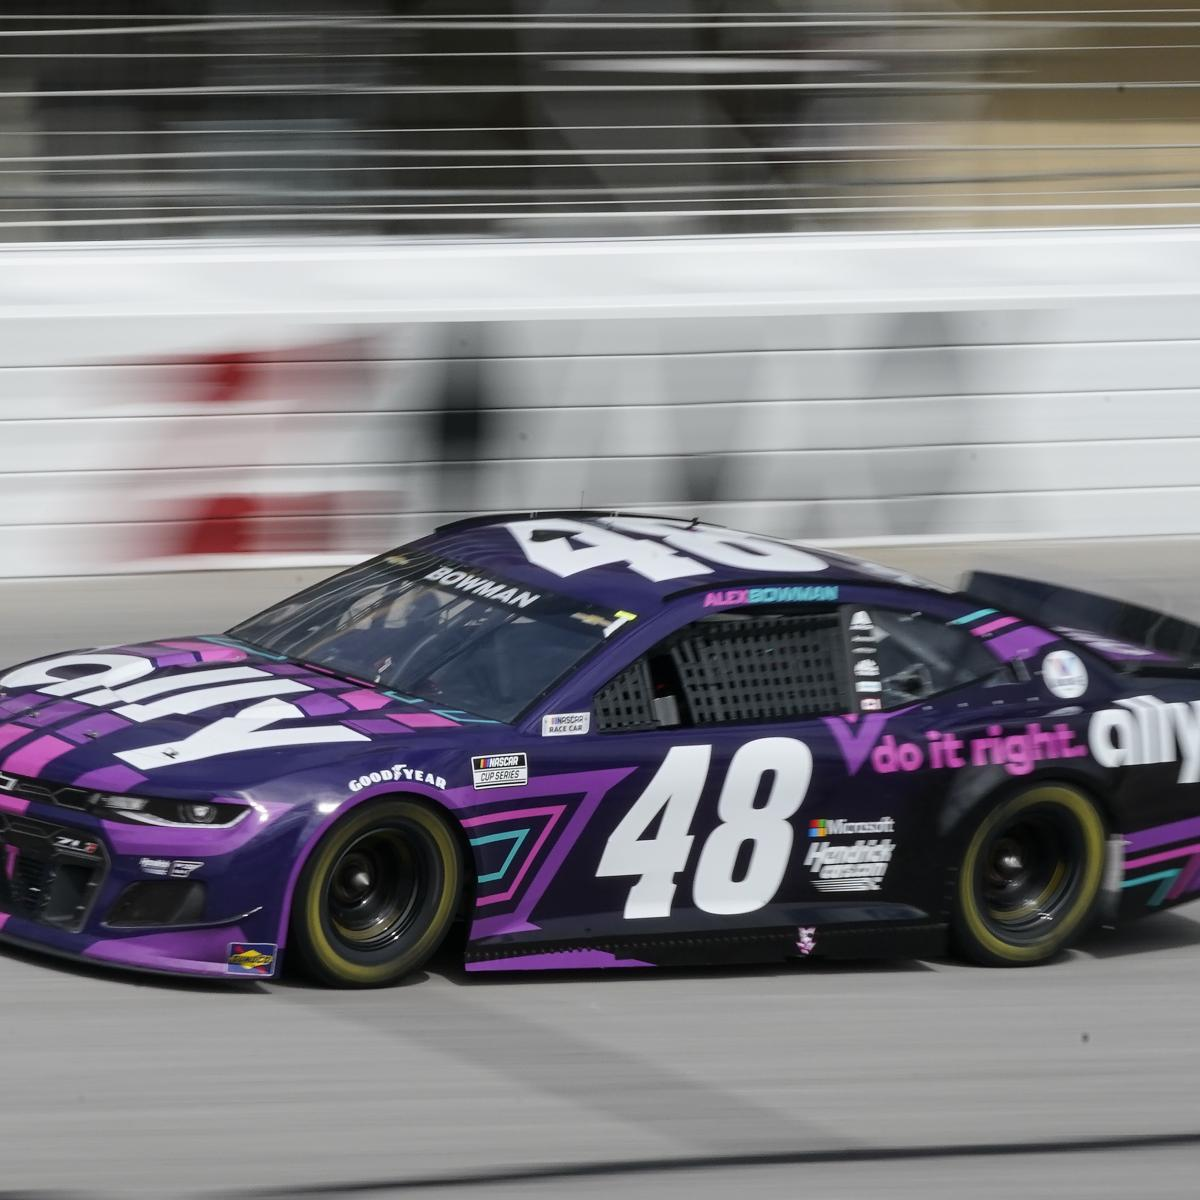 NASCAR at Richmond 2021 Results: Alex Bowman Holds Off Denny Hamlin for Win thumbnail